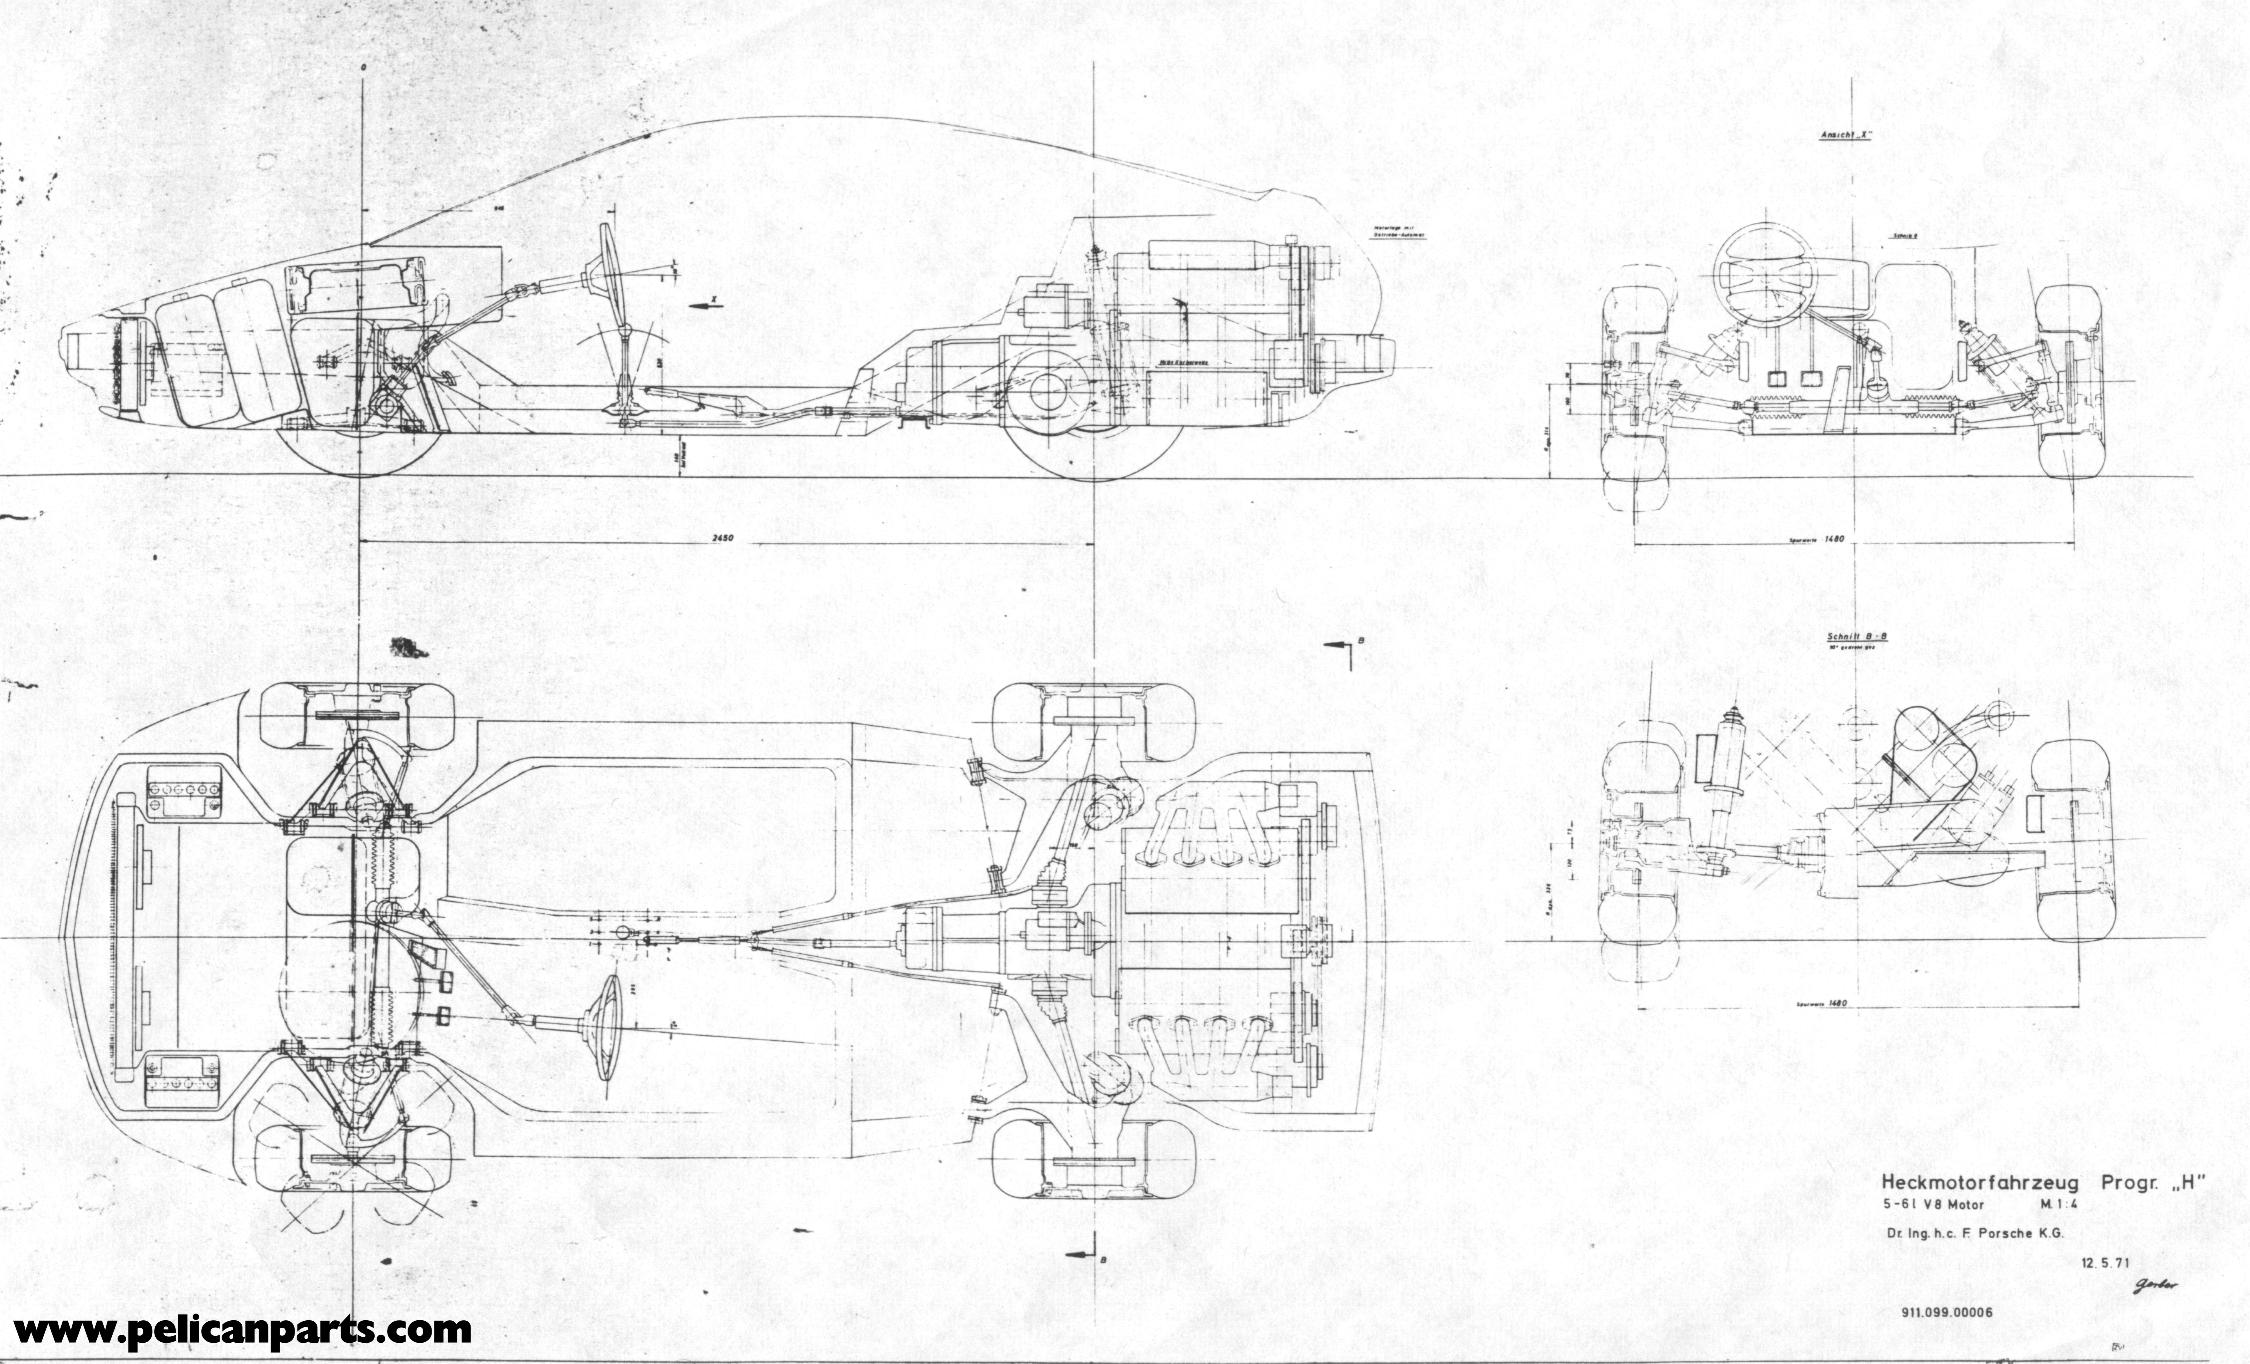 Pelican Parts Original German 911 928 Prototype Blueprint